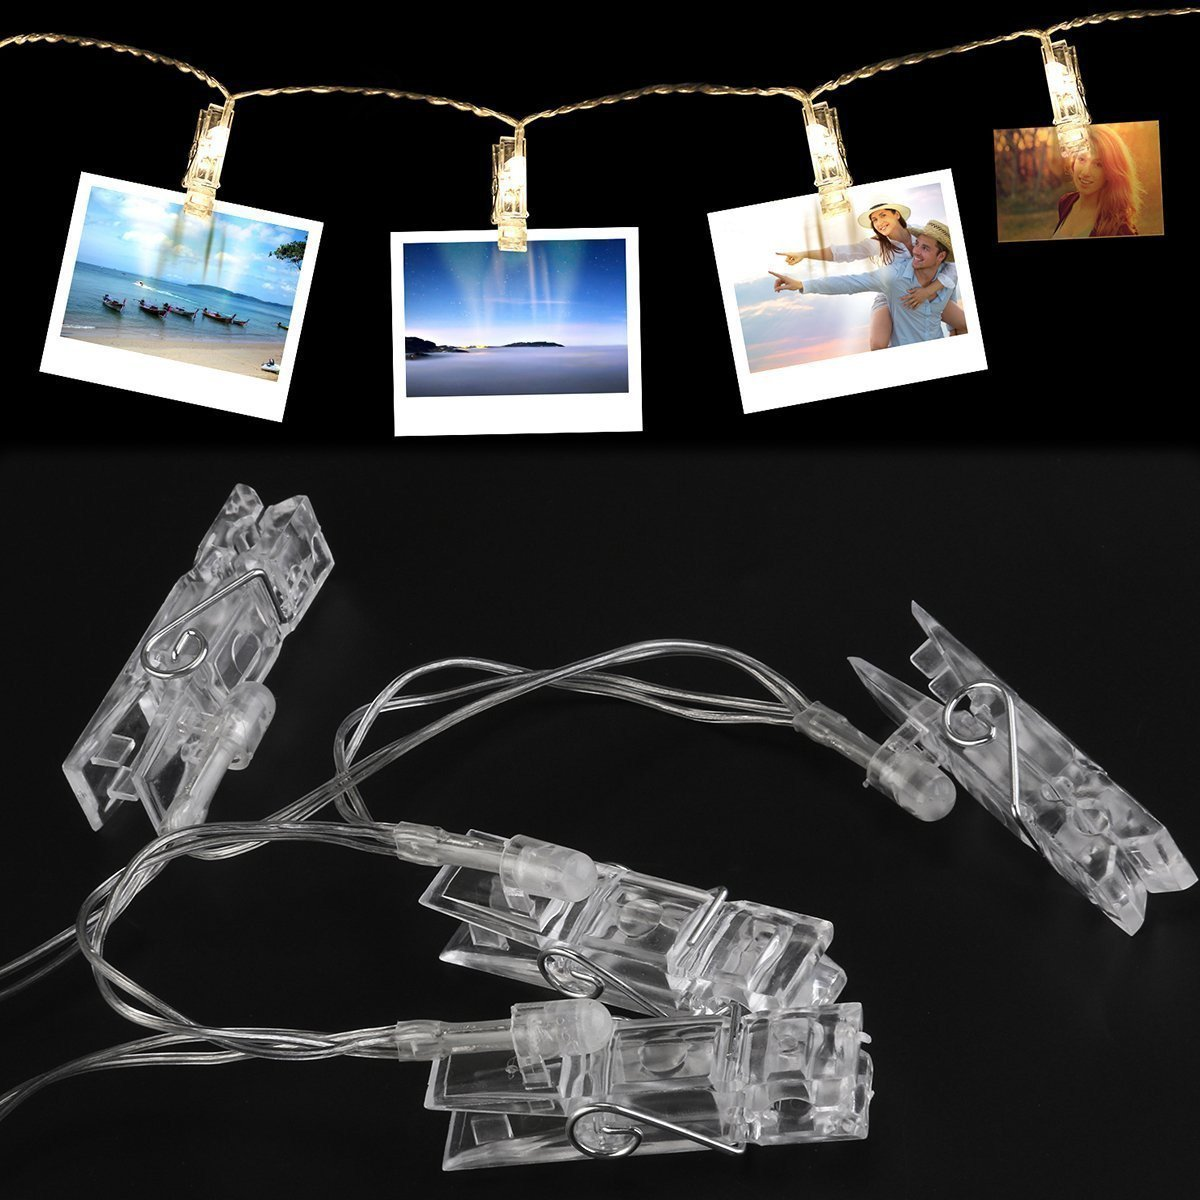 Naisidier LED Photo Clip String Lights With 50 Clips USB Powered Fairy Lights Home Decor Lights for Hanging Photos, Cards and Artwork(16.4 Ft, Warm White)